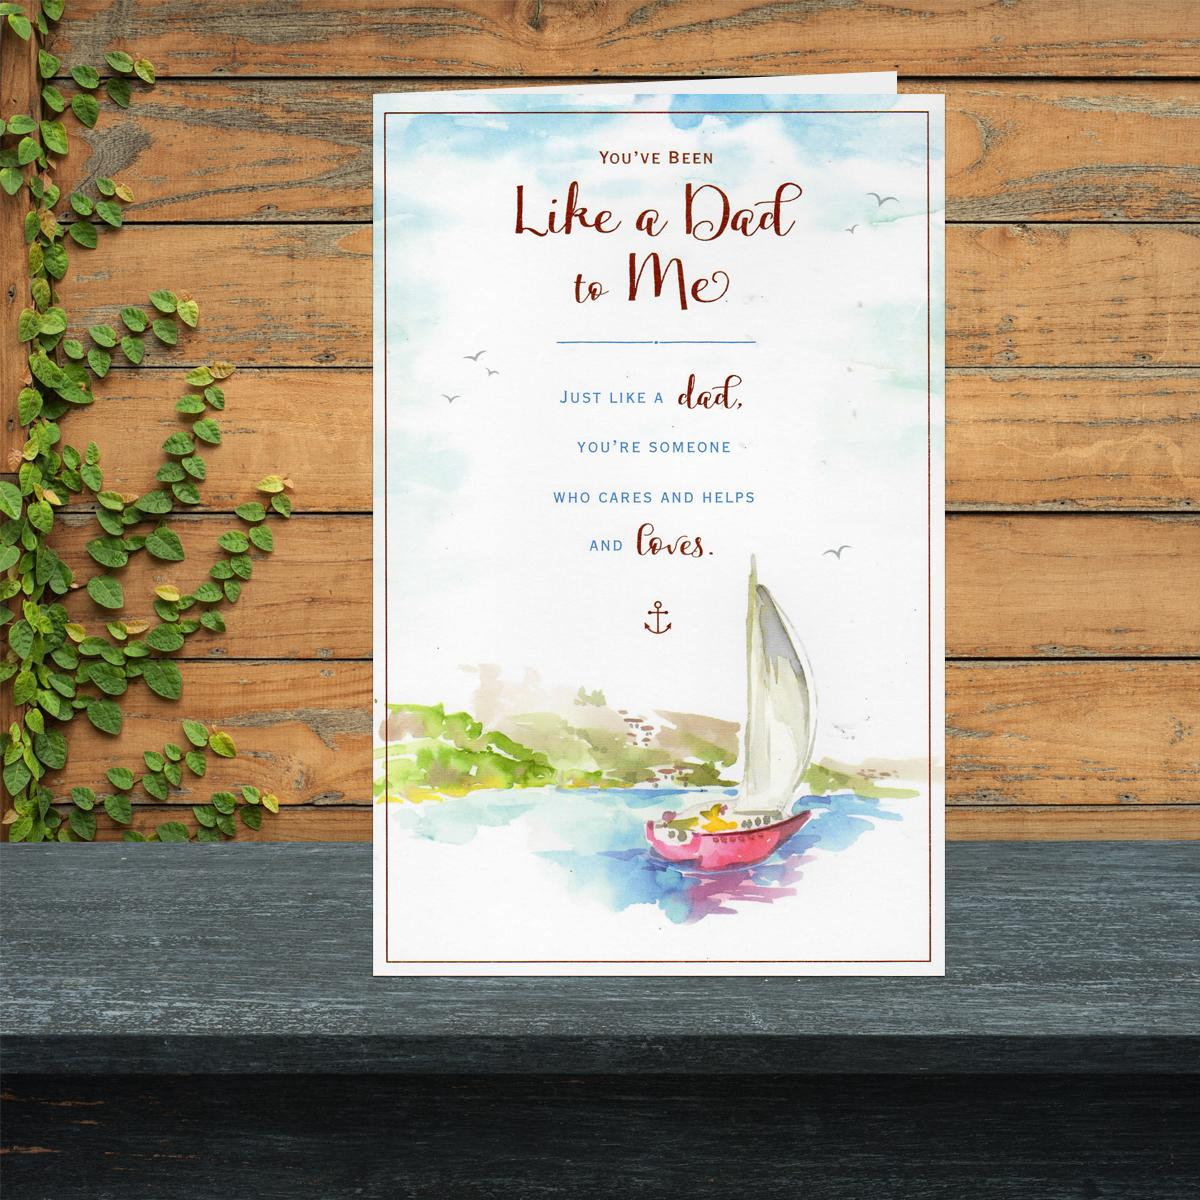 Like A Dad Birthday Card Showing A Sailing Boat